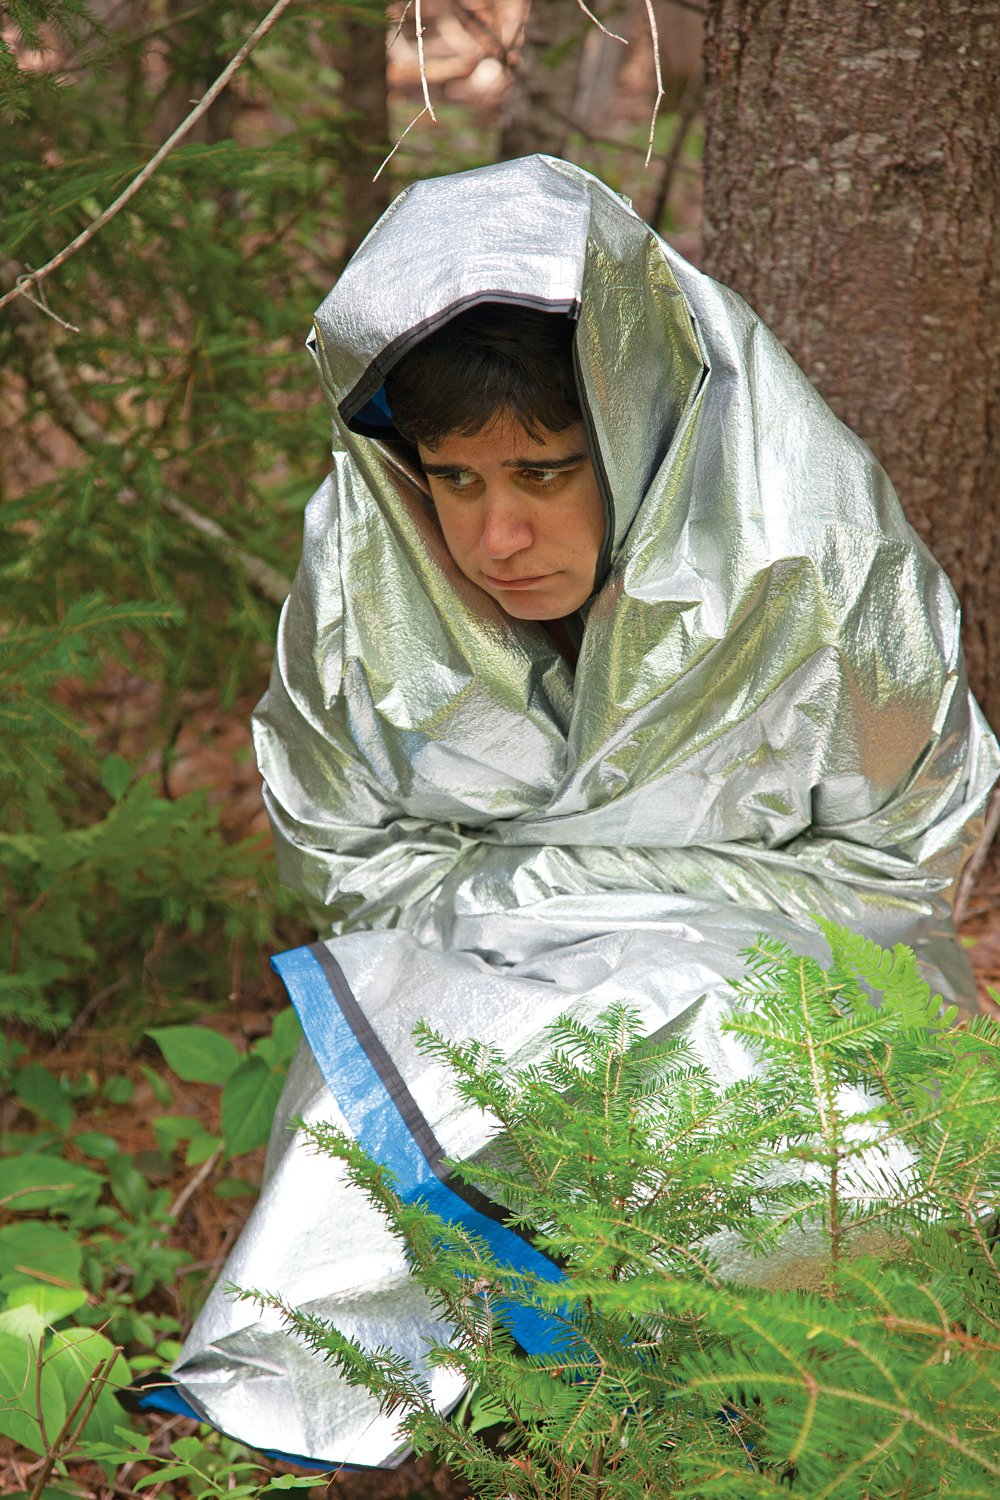 Lost in the woods using an emergency blanket